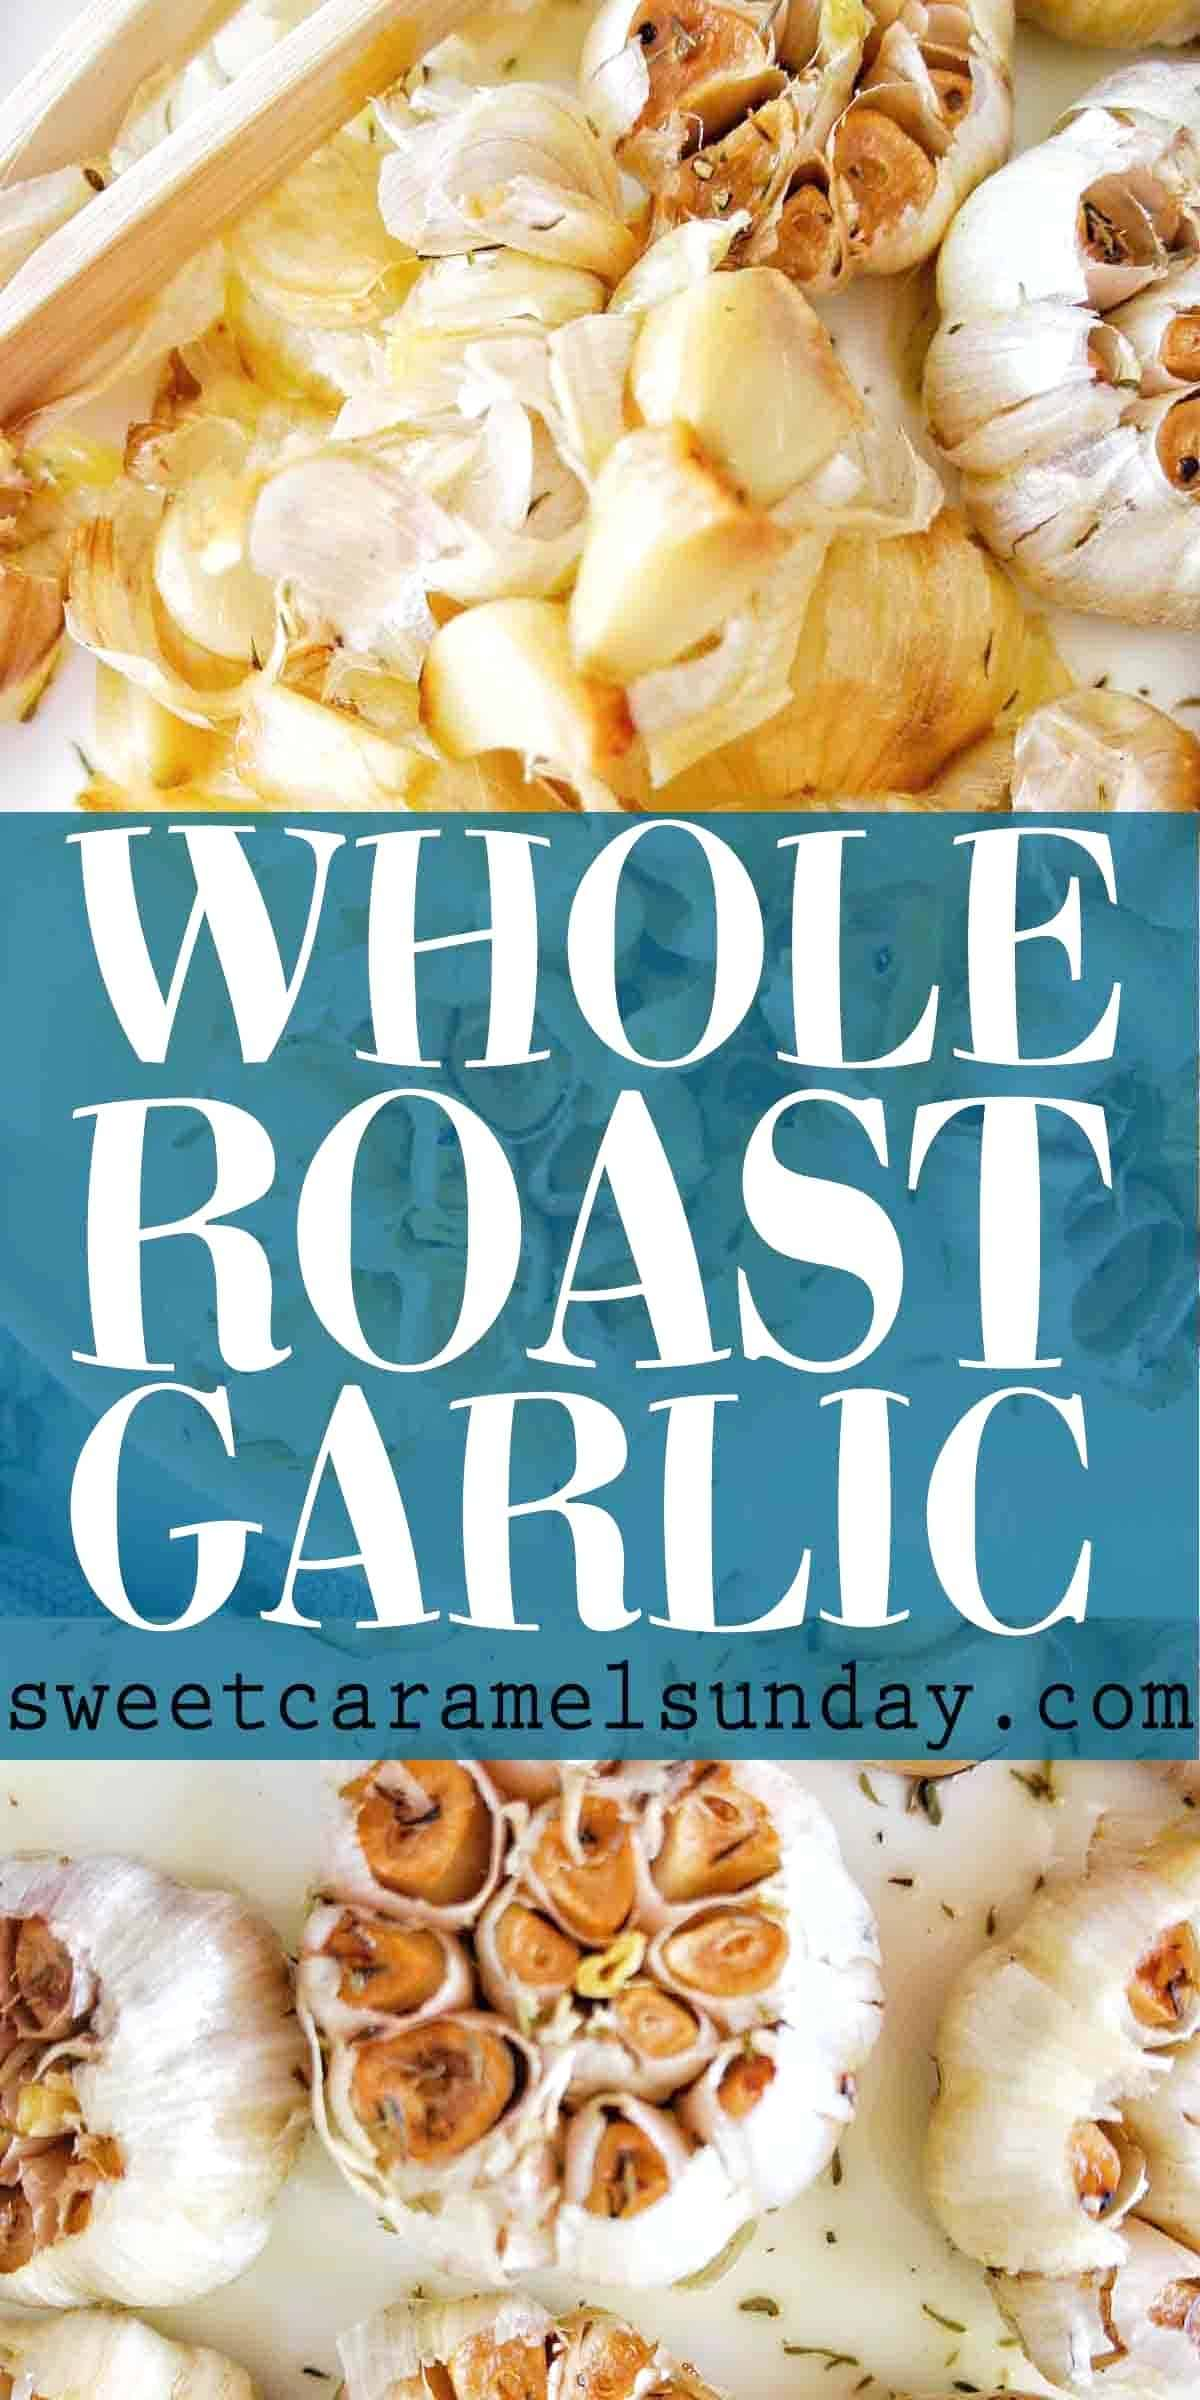 Whole Roasted Garlic with text overlay